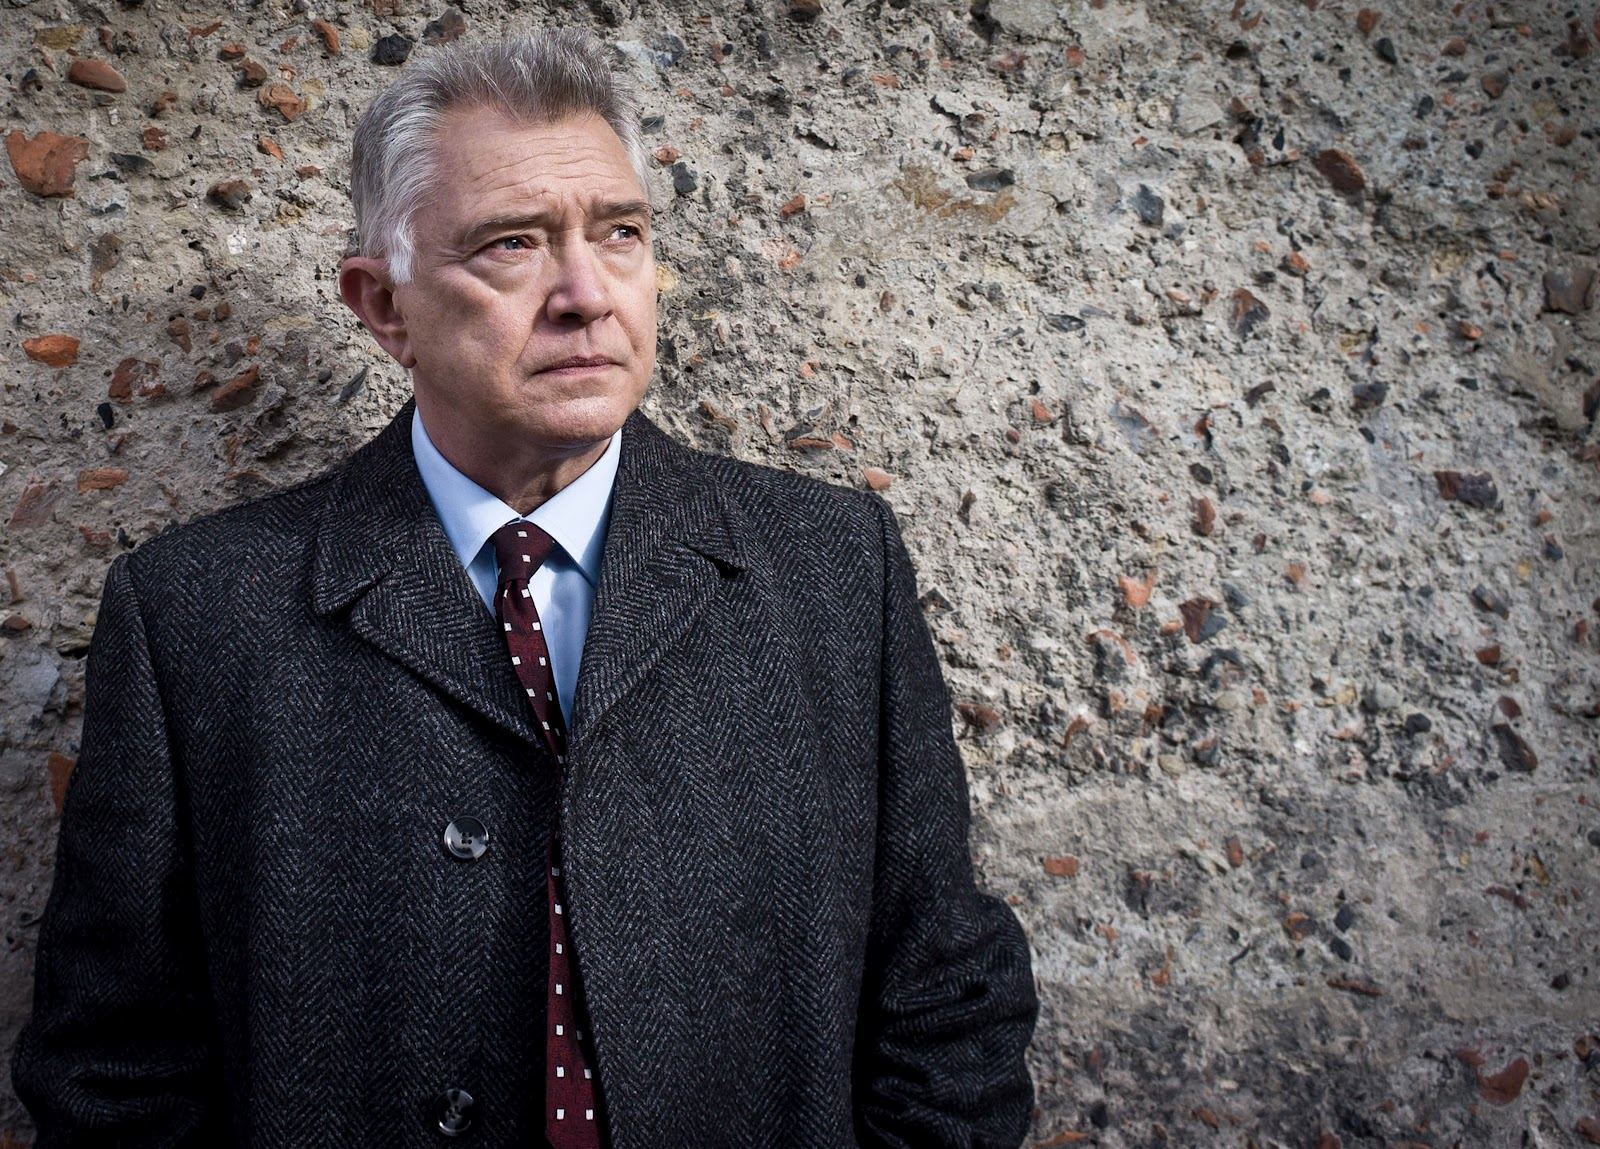 The Custard TV: George Gently: Comfy Bank Holiday TV? George Gently